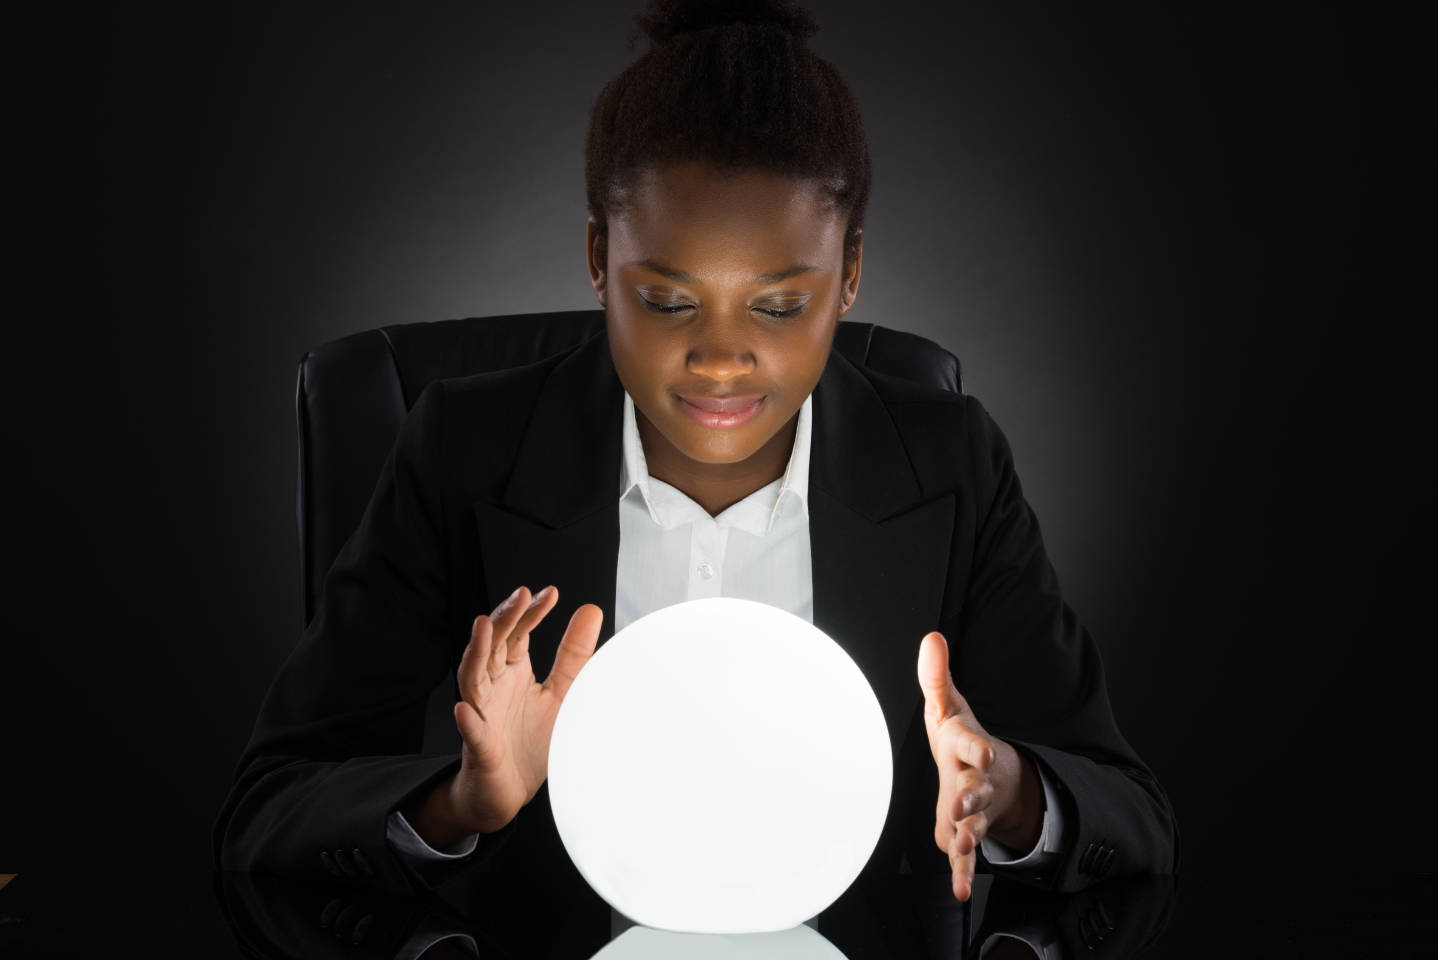 Young African Businesswoman Predicting Future With Crystal Ball On Desk Over Black Background